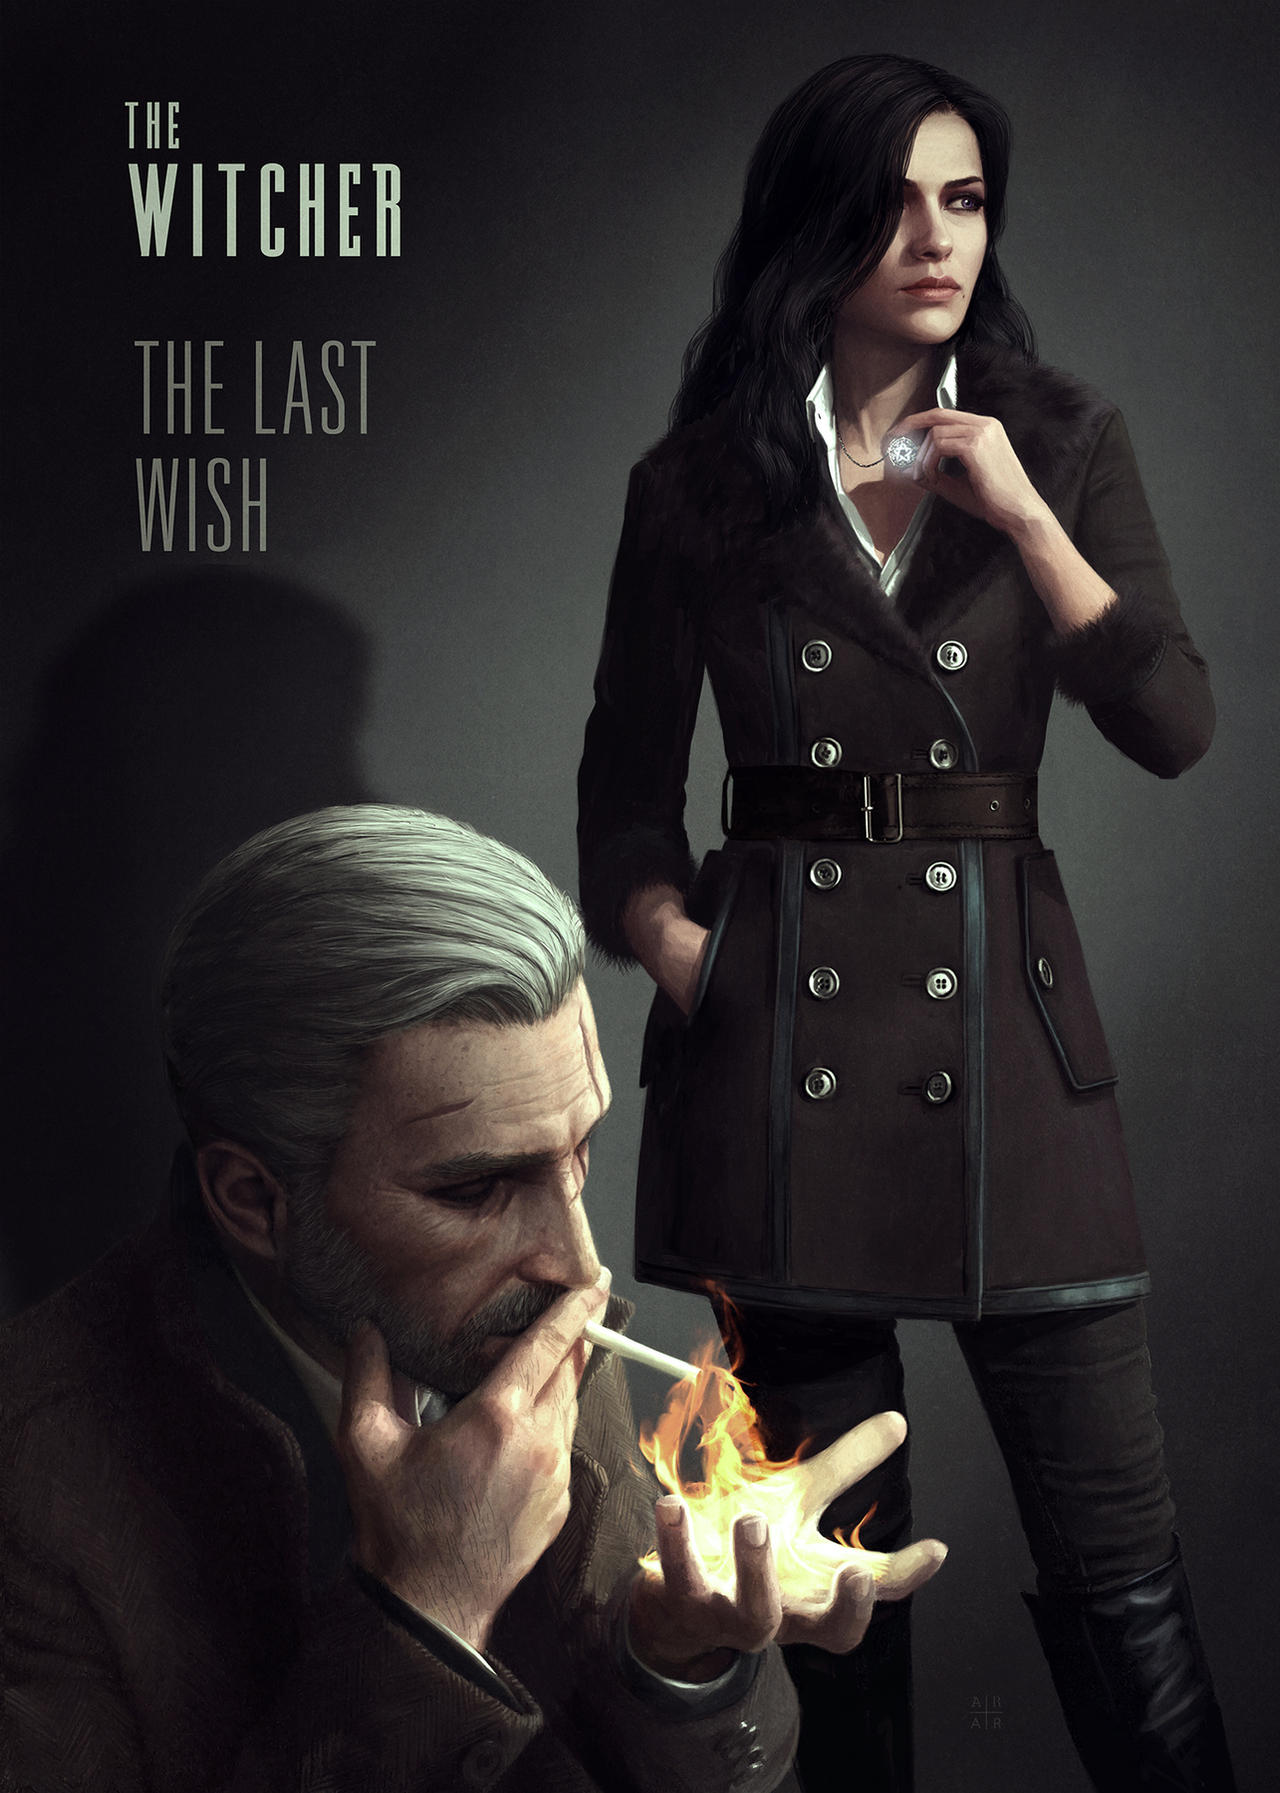 The Witcher - The Last Wish (Modern)